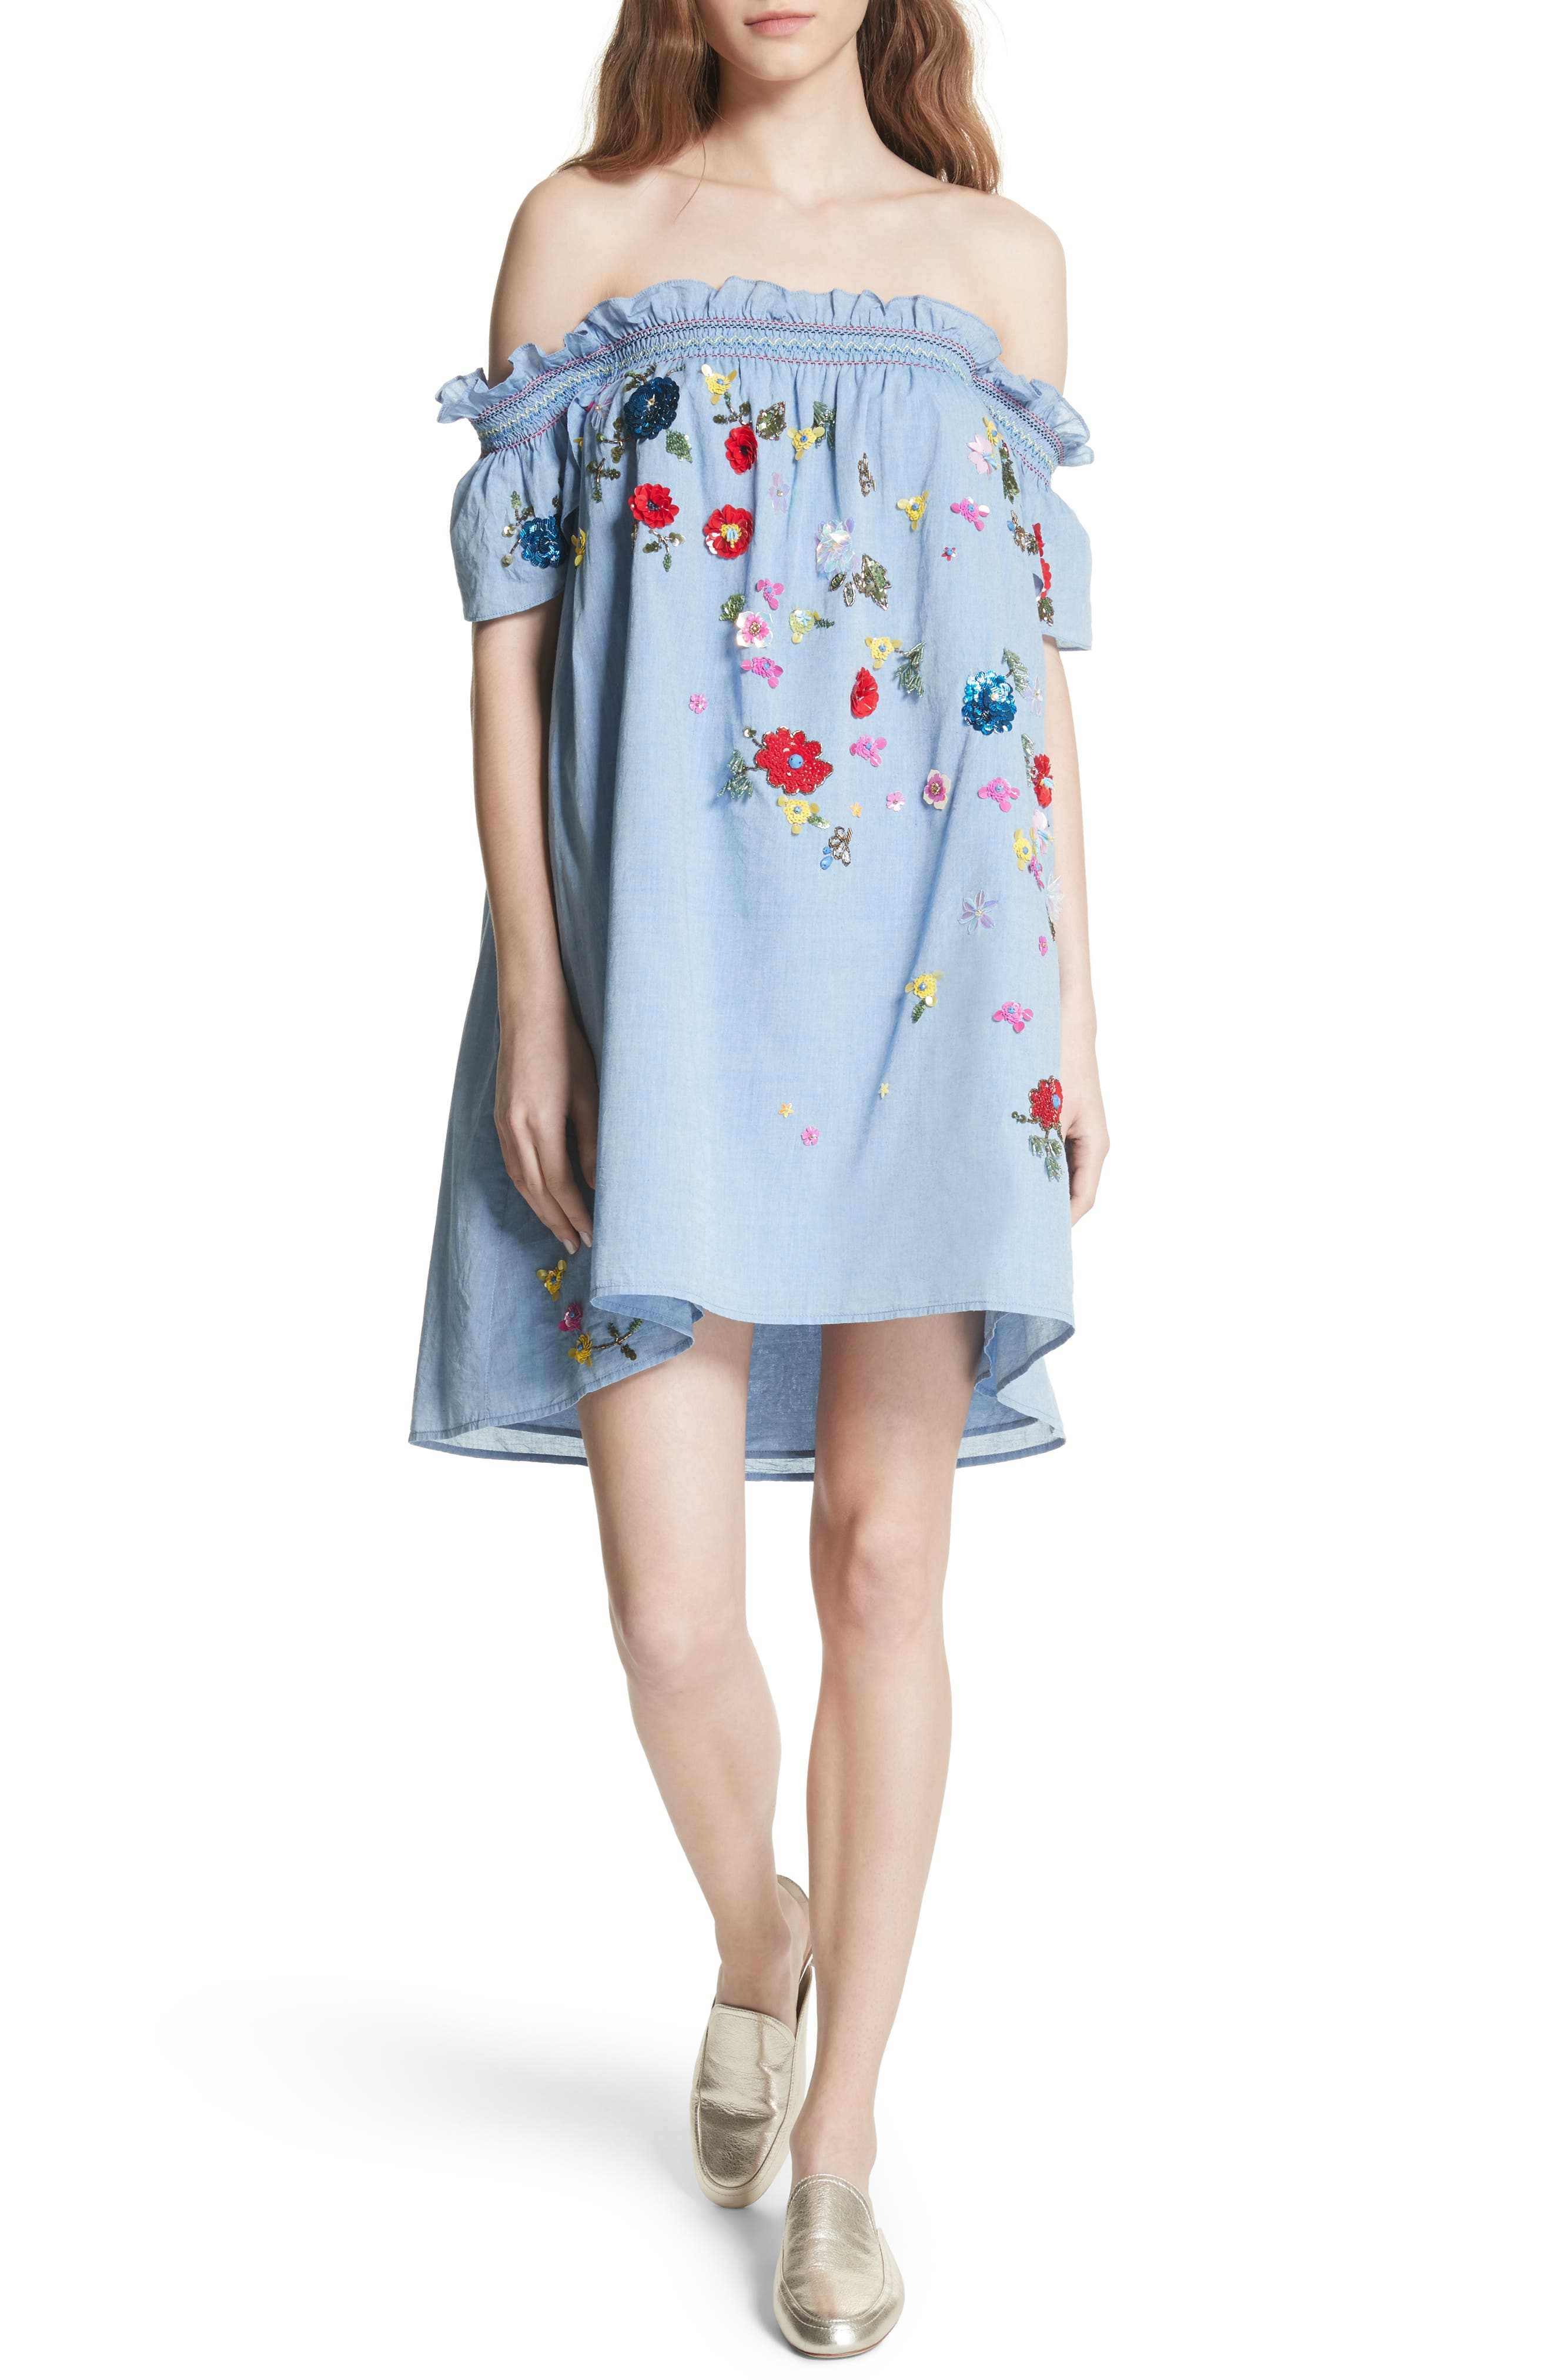 Clarimonde Embroidered Off the Shoulder Cotton Dress,                             Main thumbnail 1, color,                             400